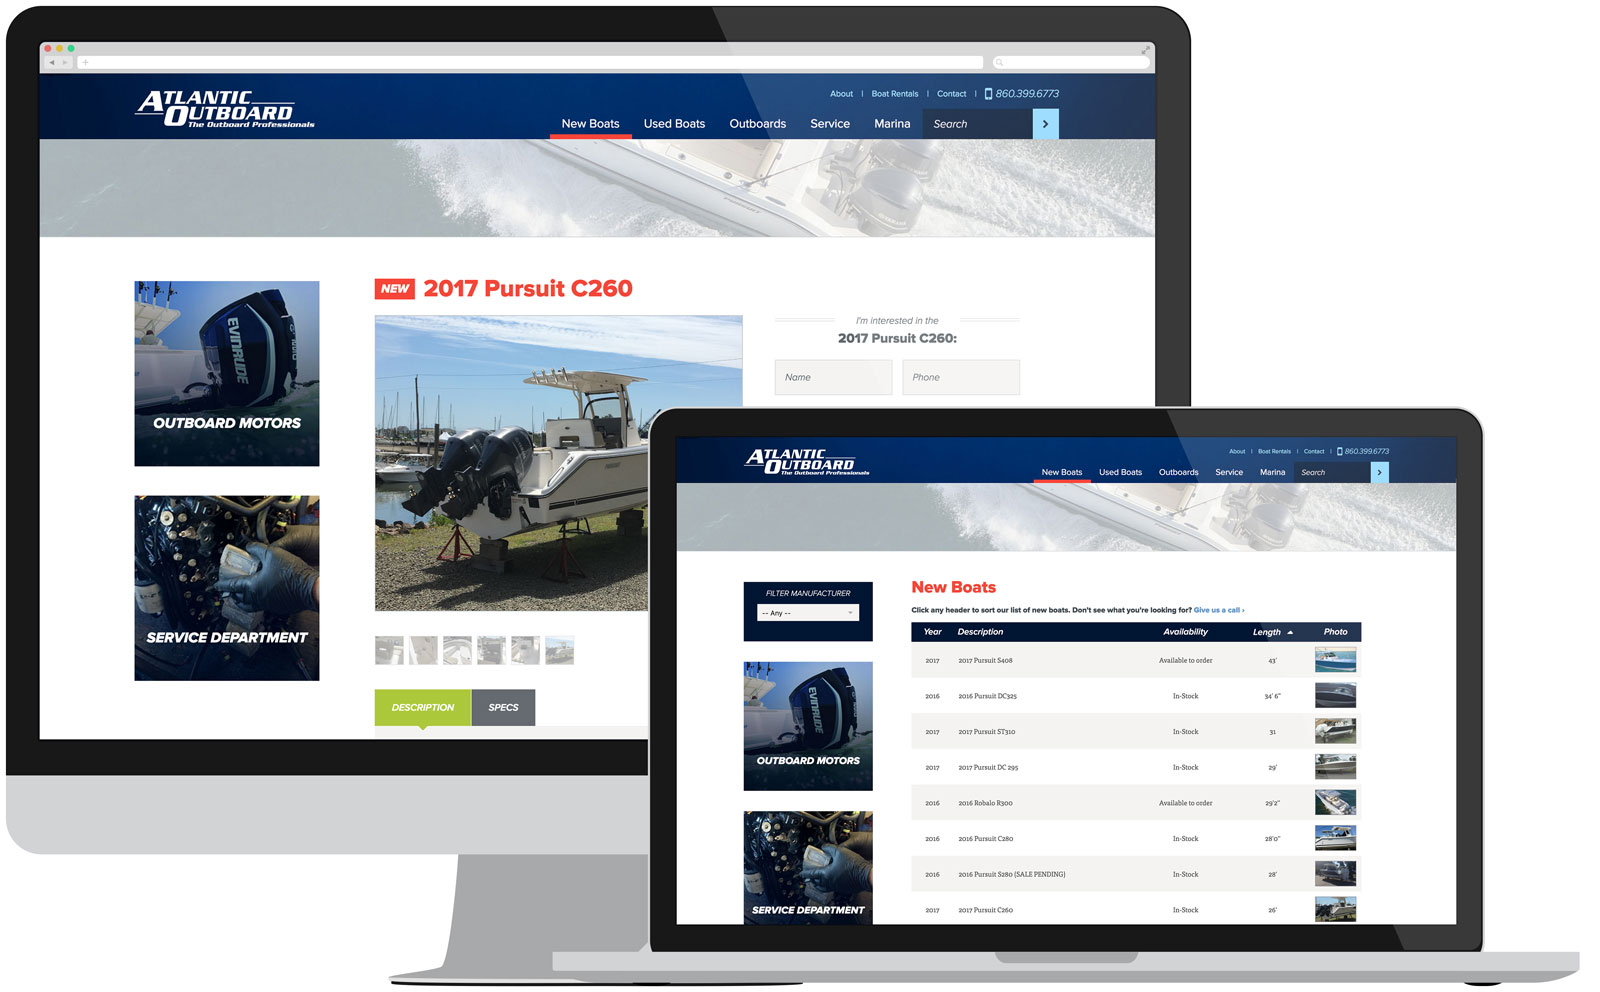 Atlantic Outboard Product Pages